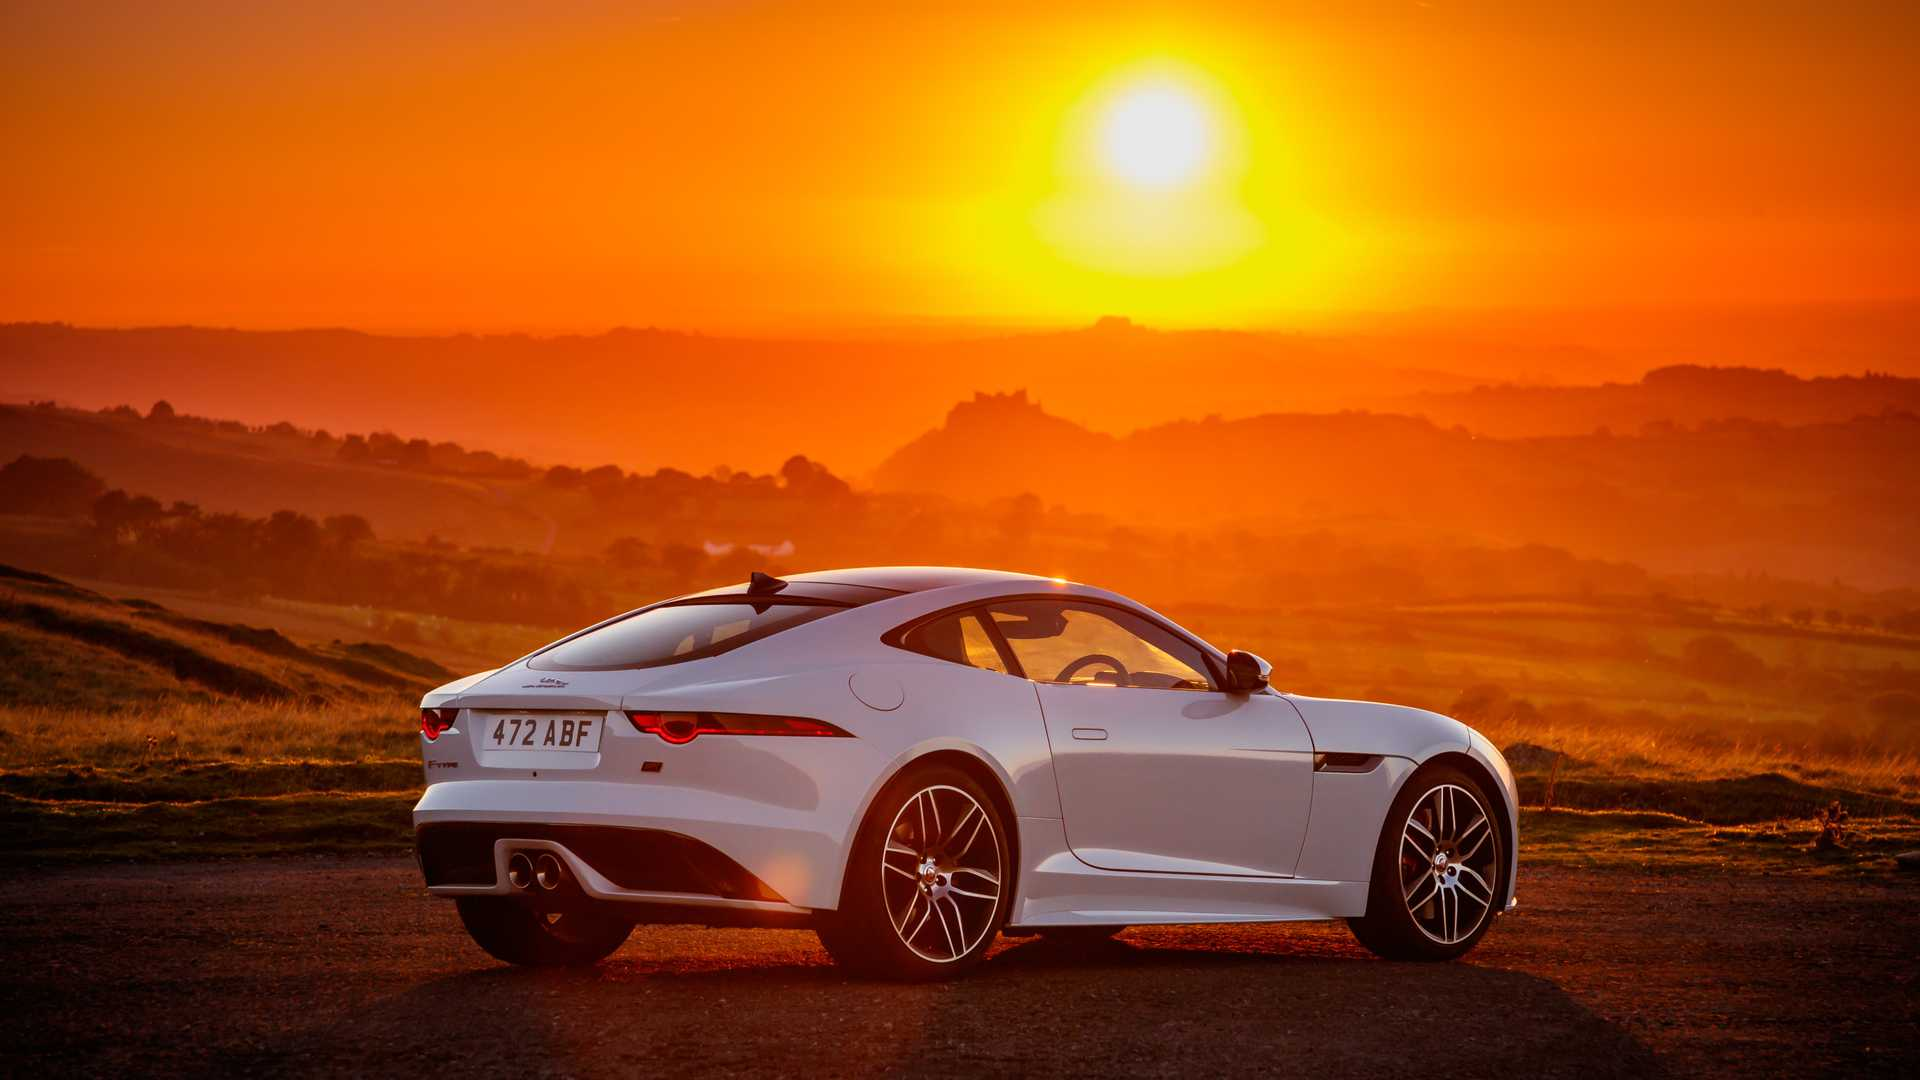 2020-jaguar-f-type-checkered-flag-edition (9)